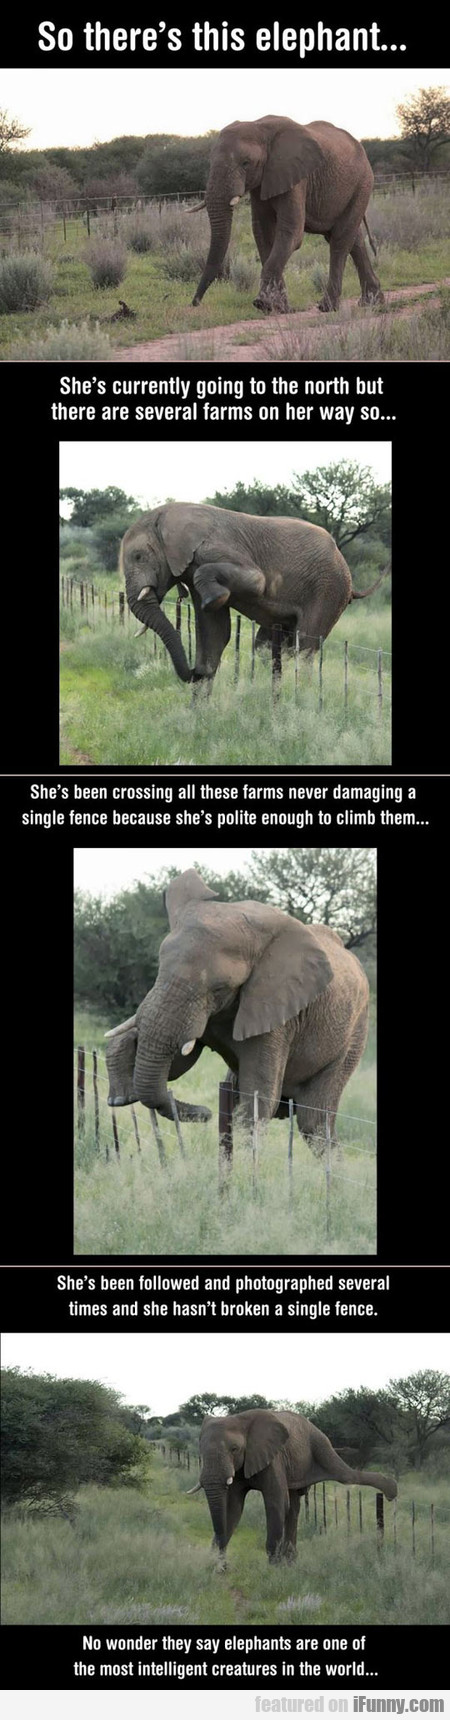 Elephants Are The Most Intelligent Creatures